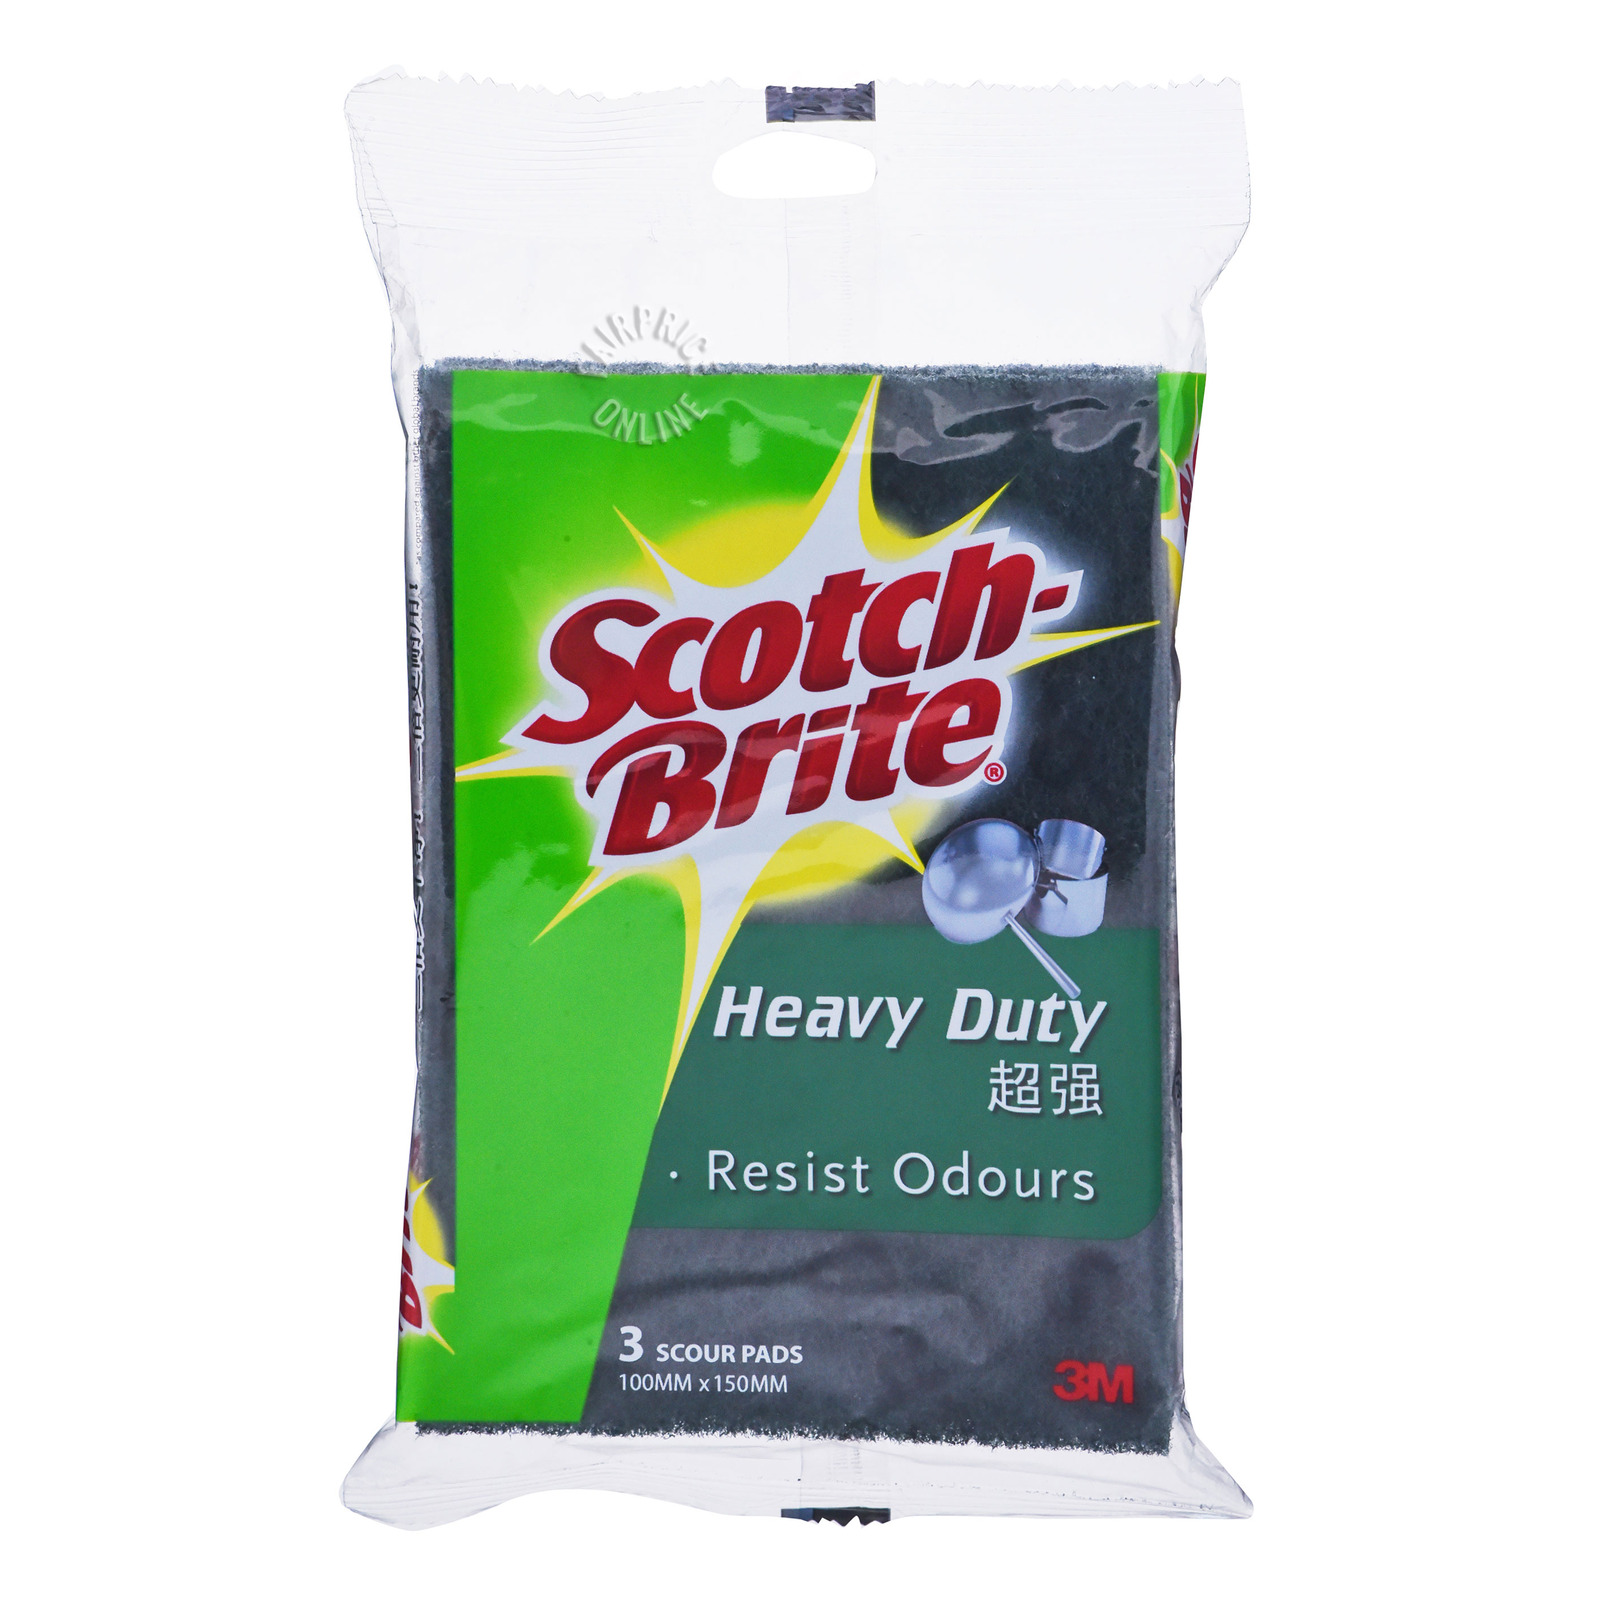 3M Scotch-Brite Scour Pads - Heavy Duty